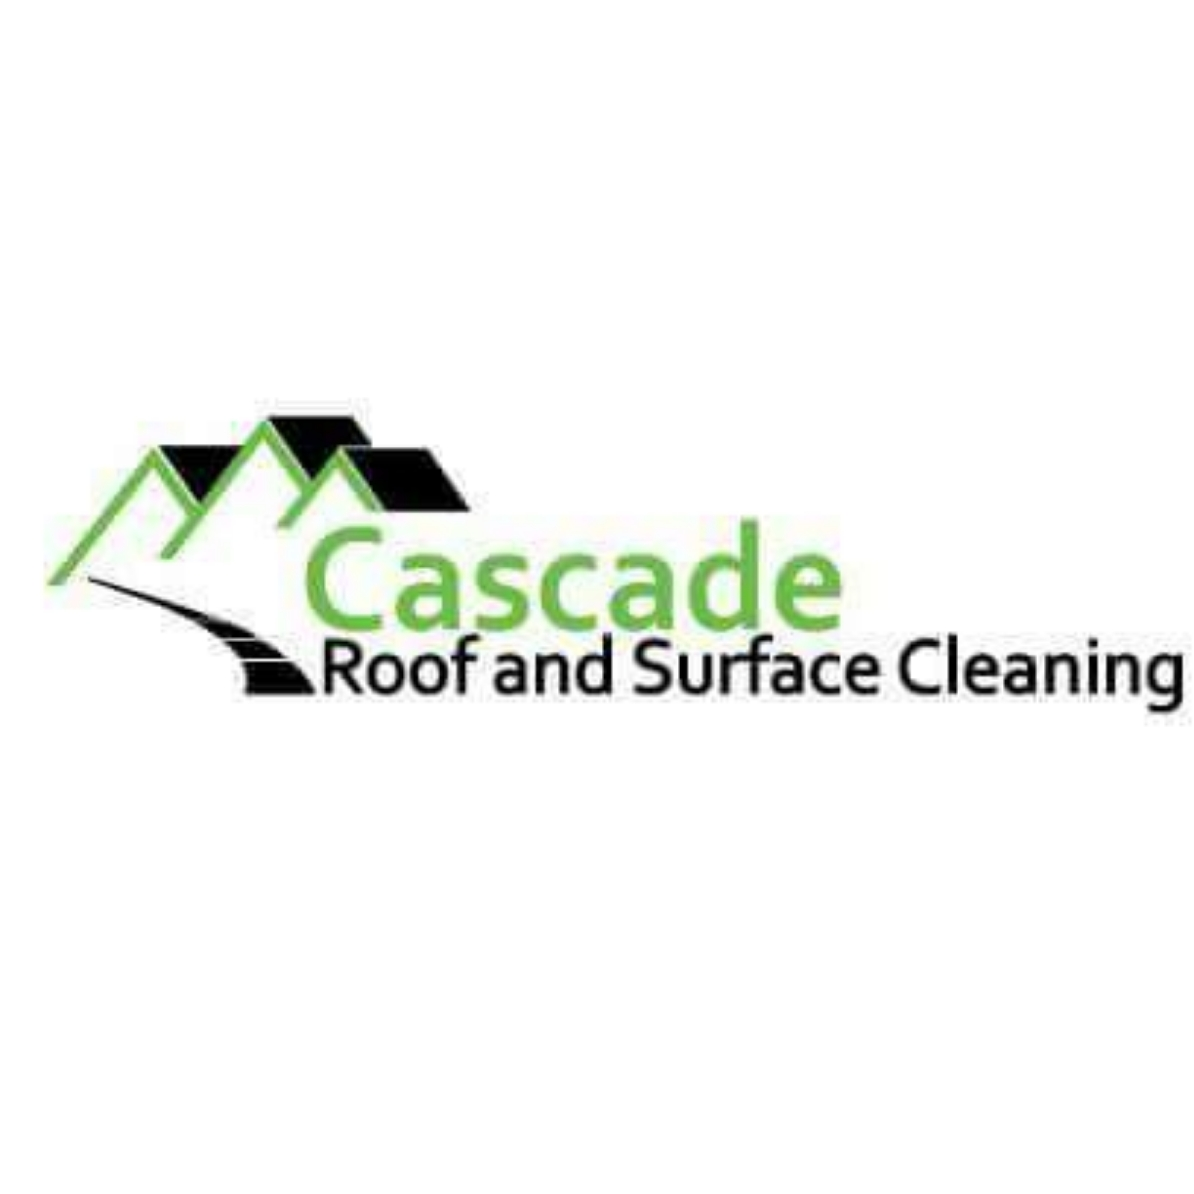 Cascade Roof and Surface Cleaning LLC